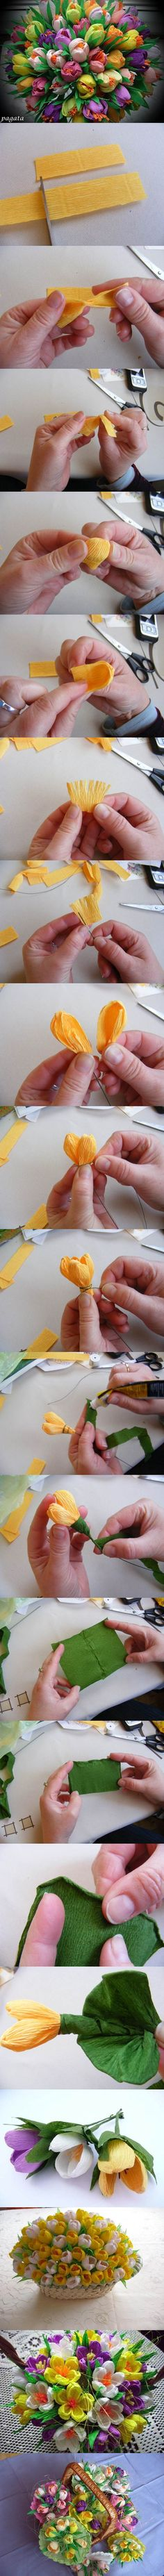 DIY  Centro de flores de papel http://www.icreativeideas.com/diy-beautiful-bouquet-of-crepe-paper-crocuses/